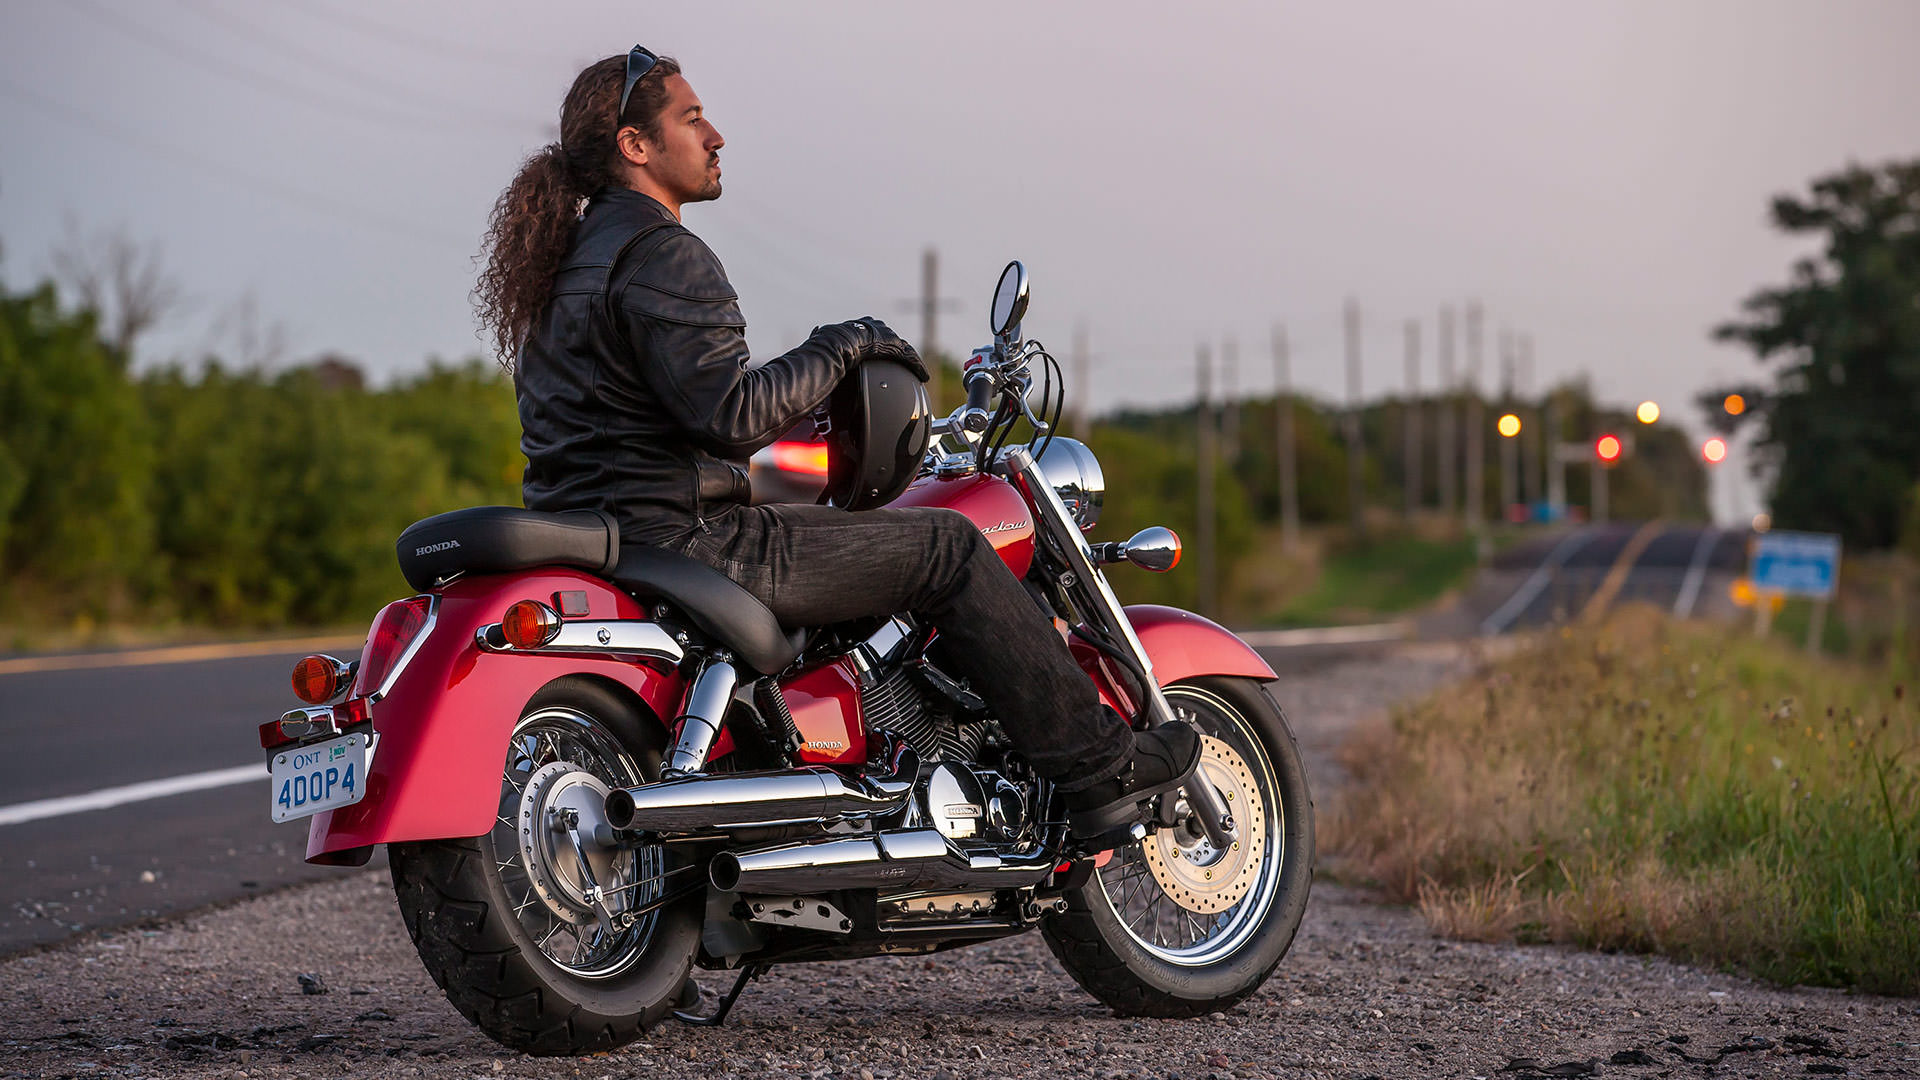 2016 Honda Shadow Aero 750 Review / Specs / Pictures / Videos | Honda Pro  Kevin